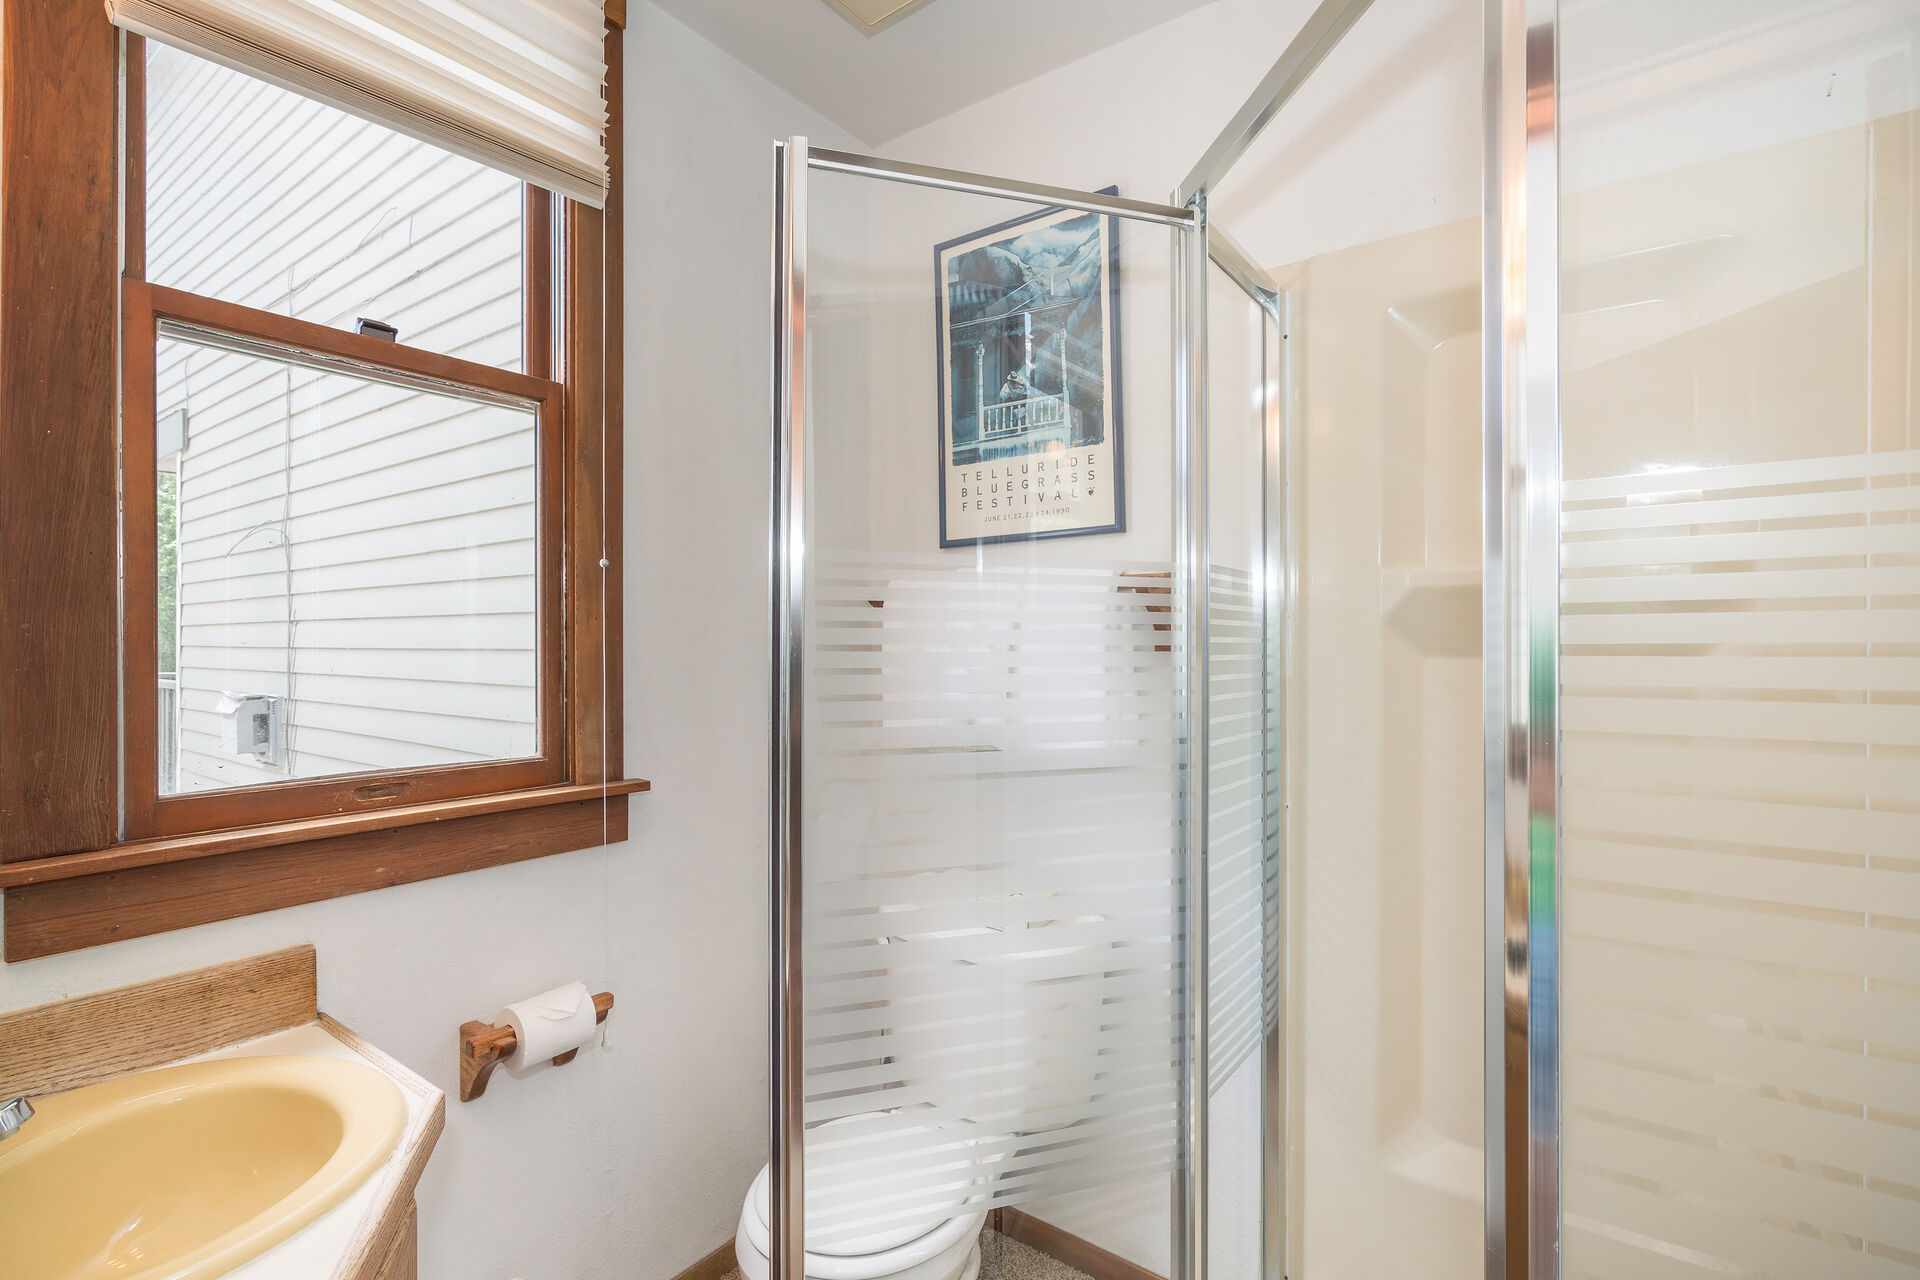 A walk-in shower, a toilet and a sink